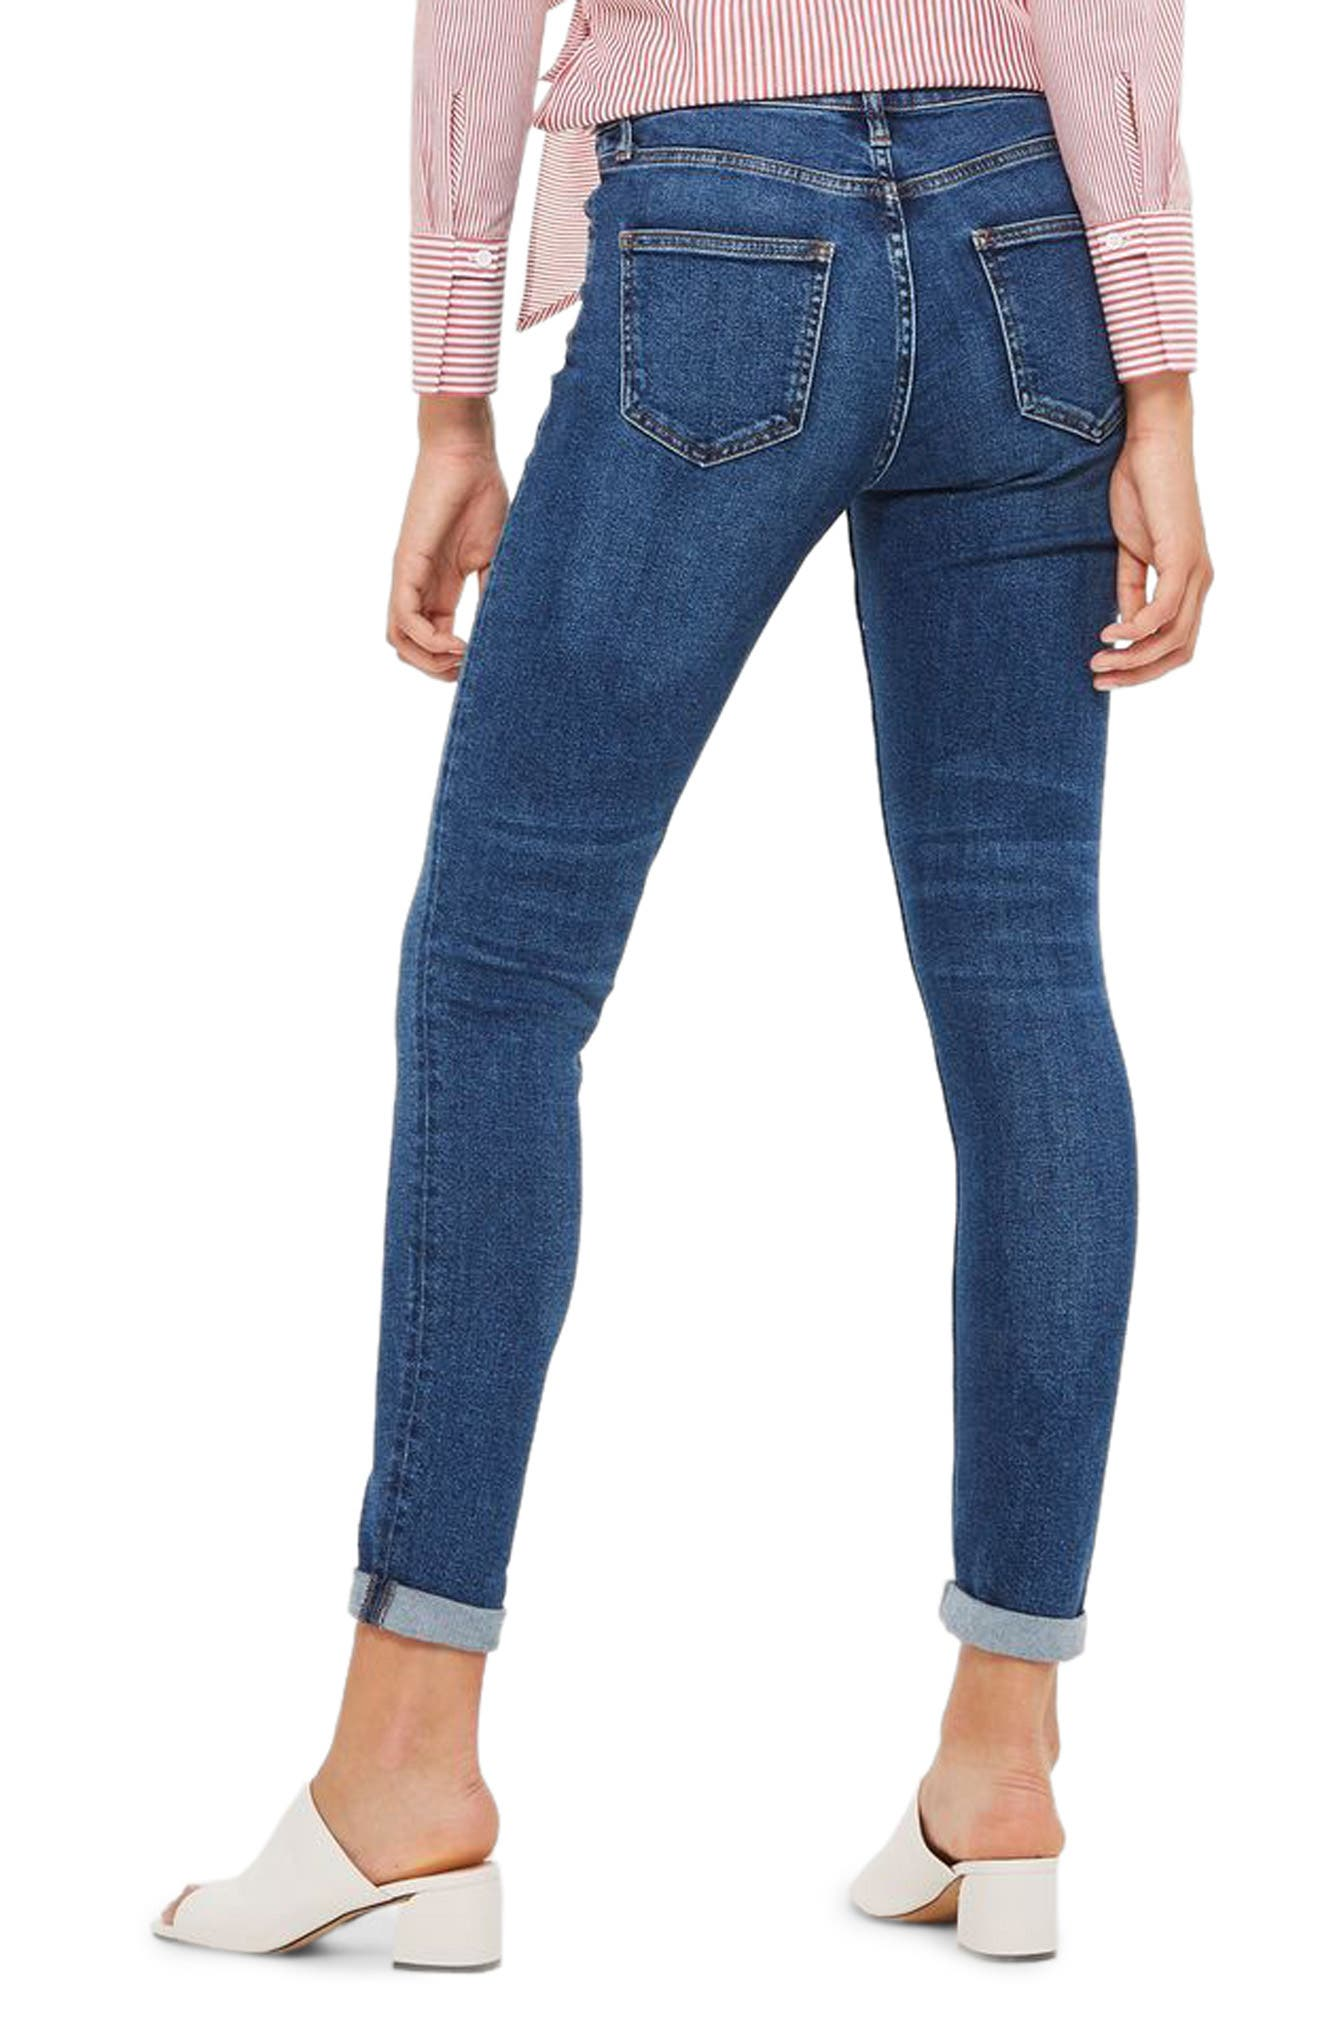 Lucas Relaxed Fit Jeans,                             Alternate thumbnail 2, color,                             400